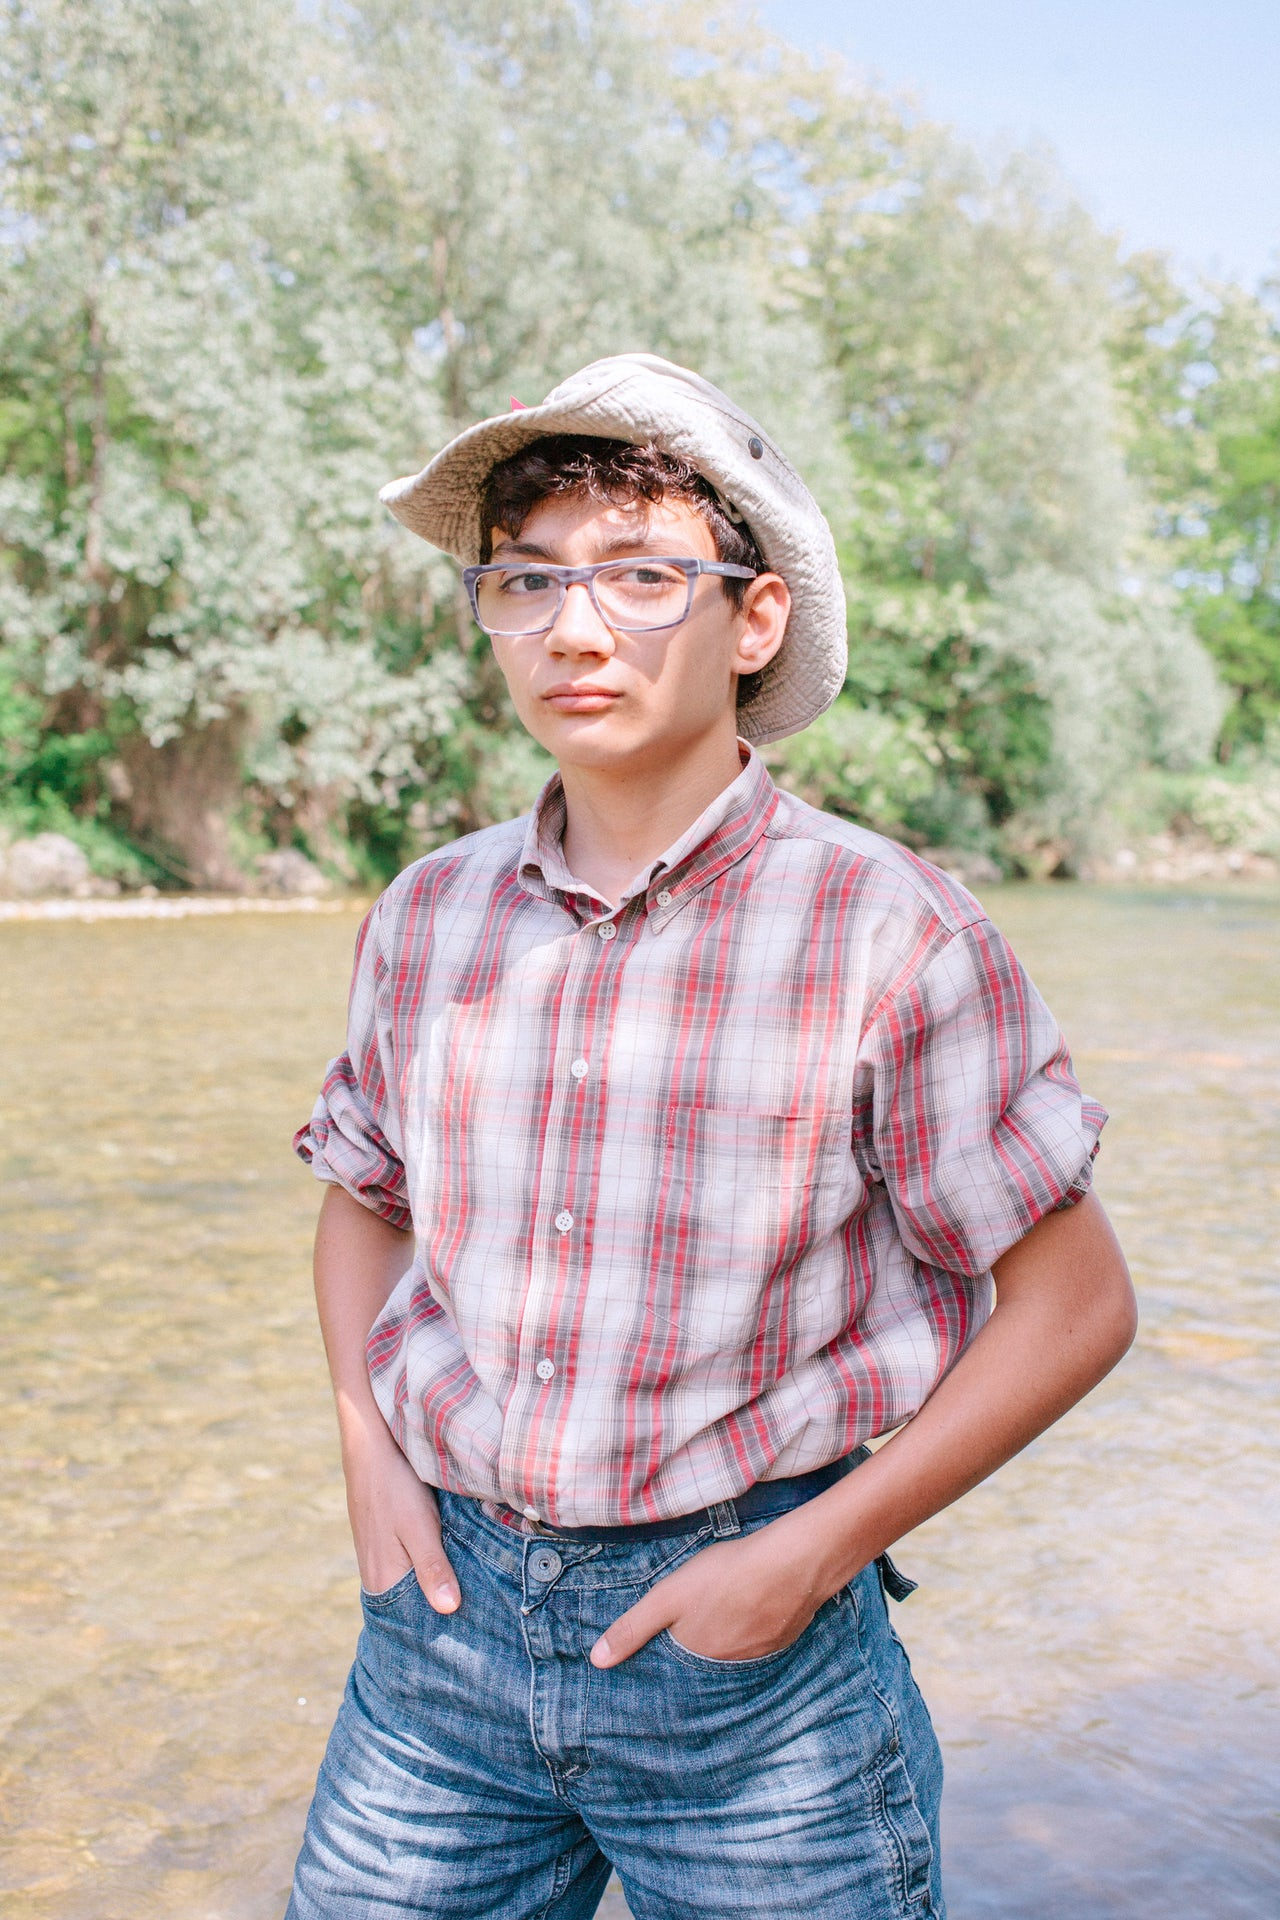 Riccardo Silvestri, 12, spends almost every weekend with his dad looking for gold in a creek near Turin.